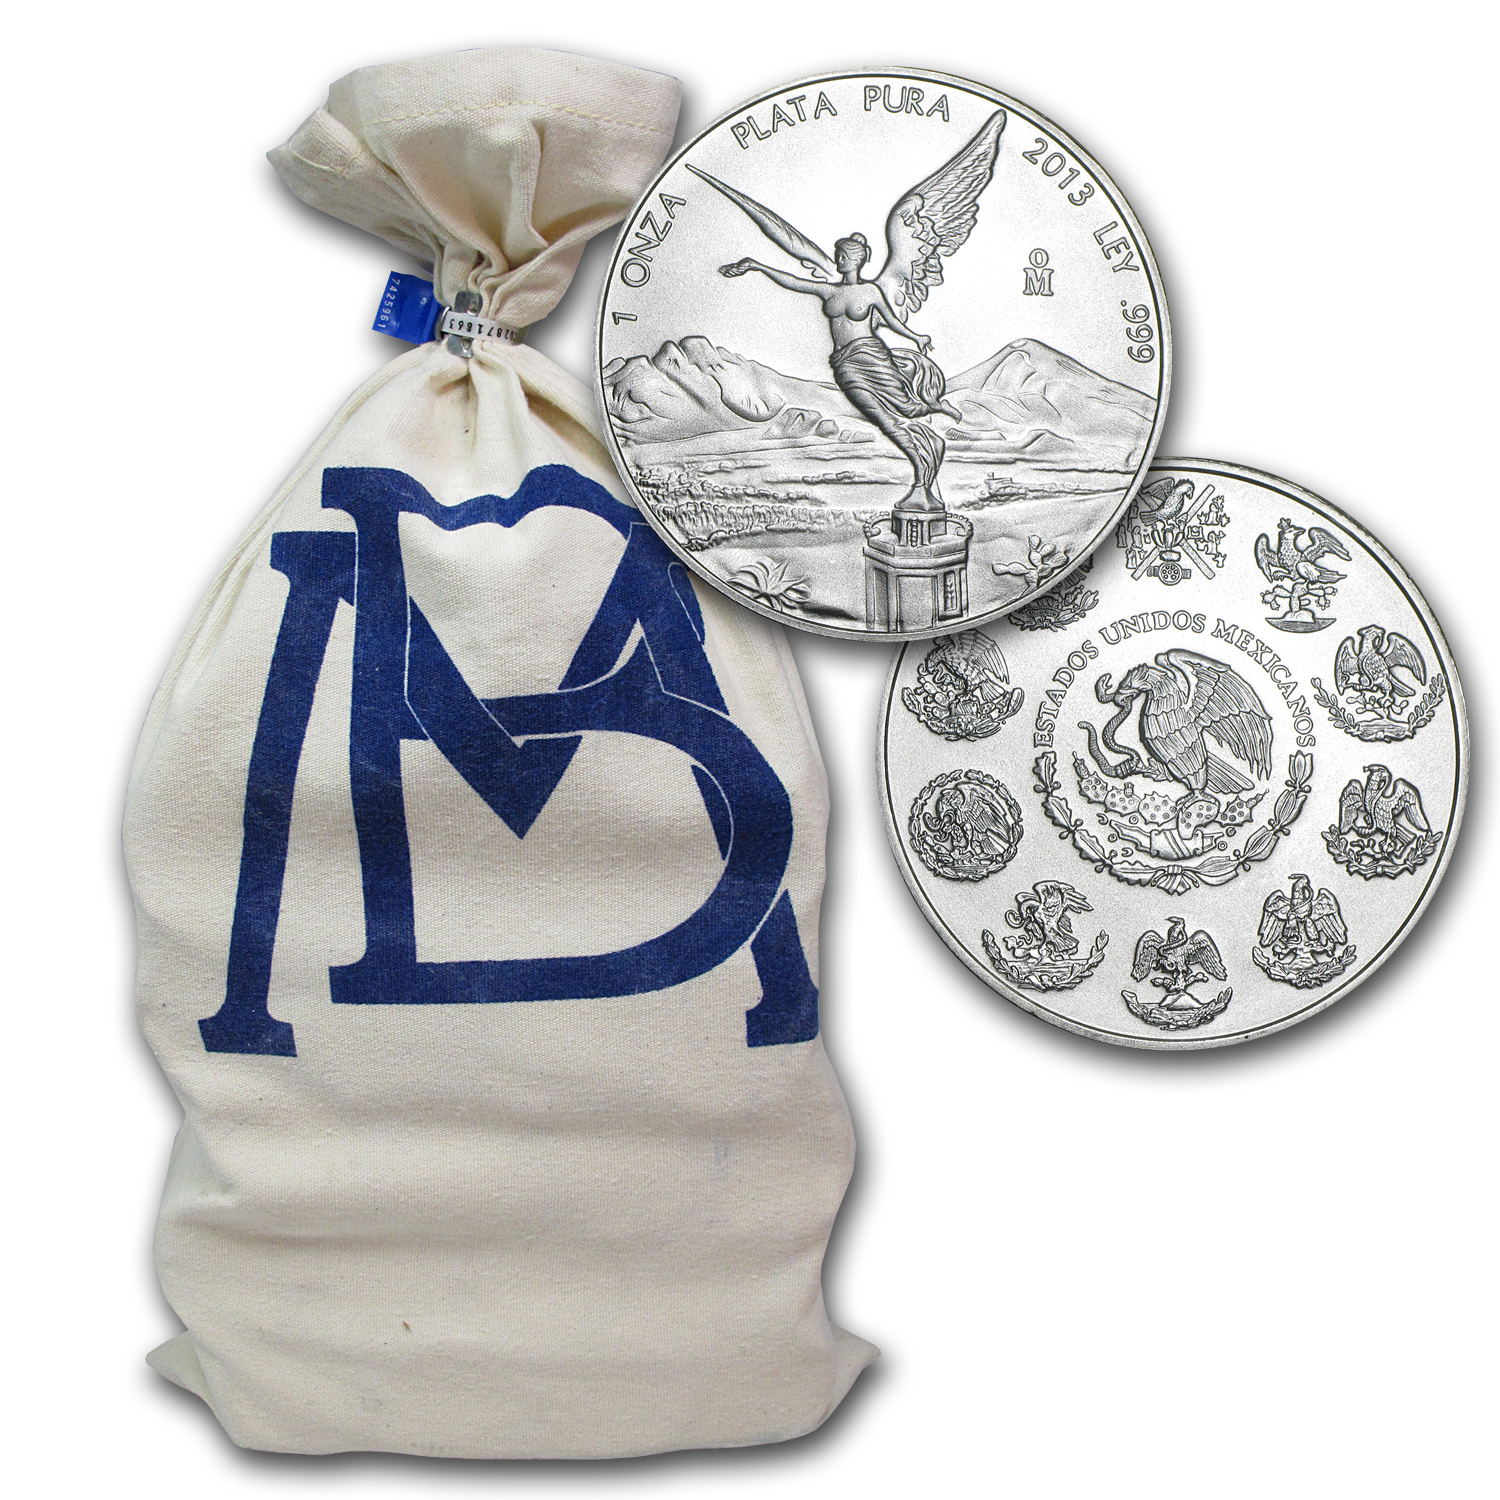 2013 Mexico 1 oz Silver Libertad (500-Coin Original Bank Bag)